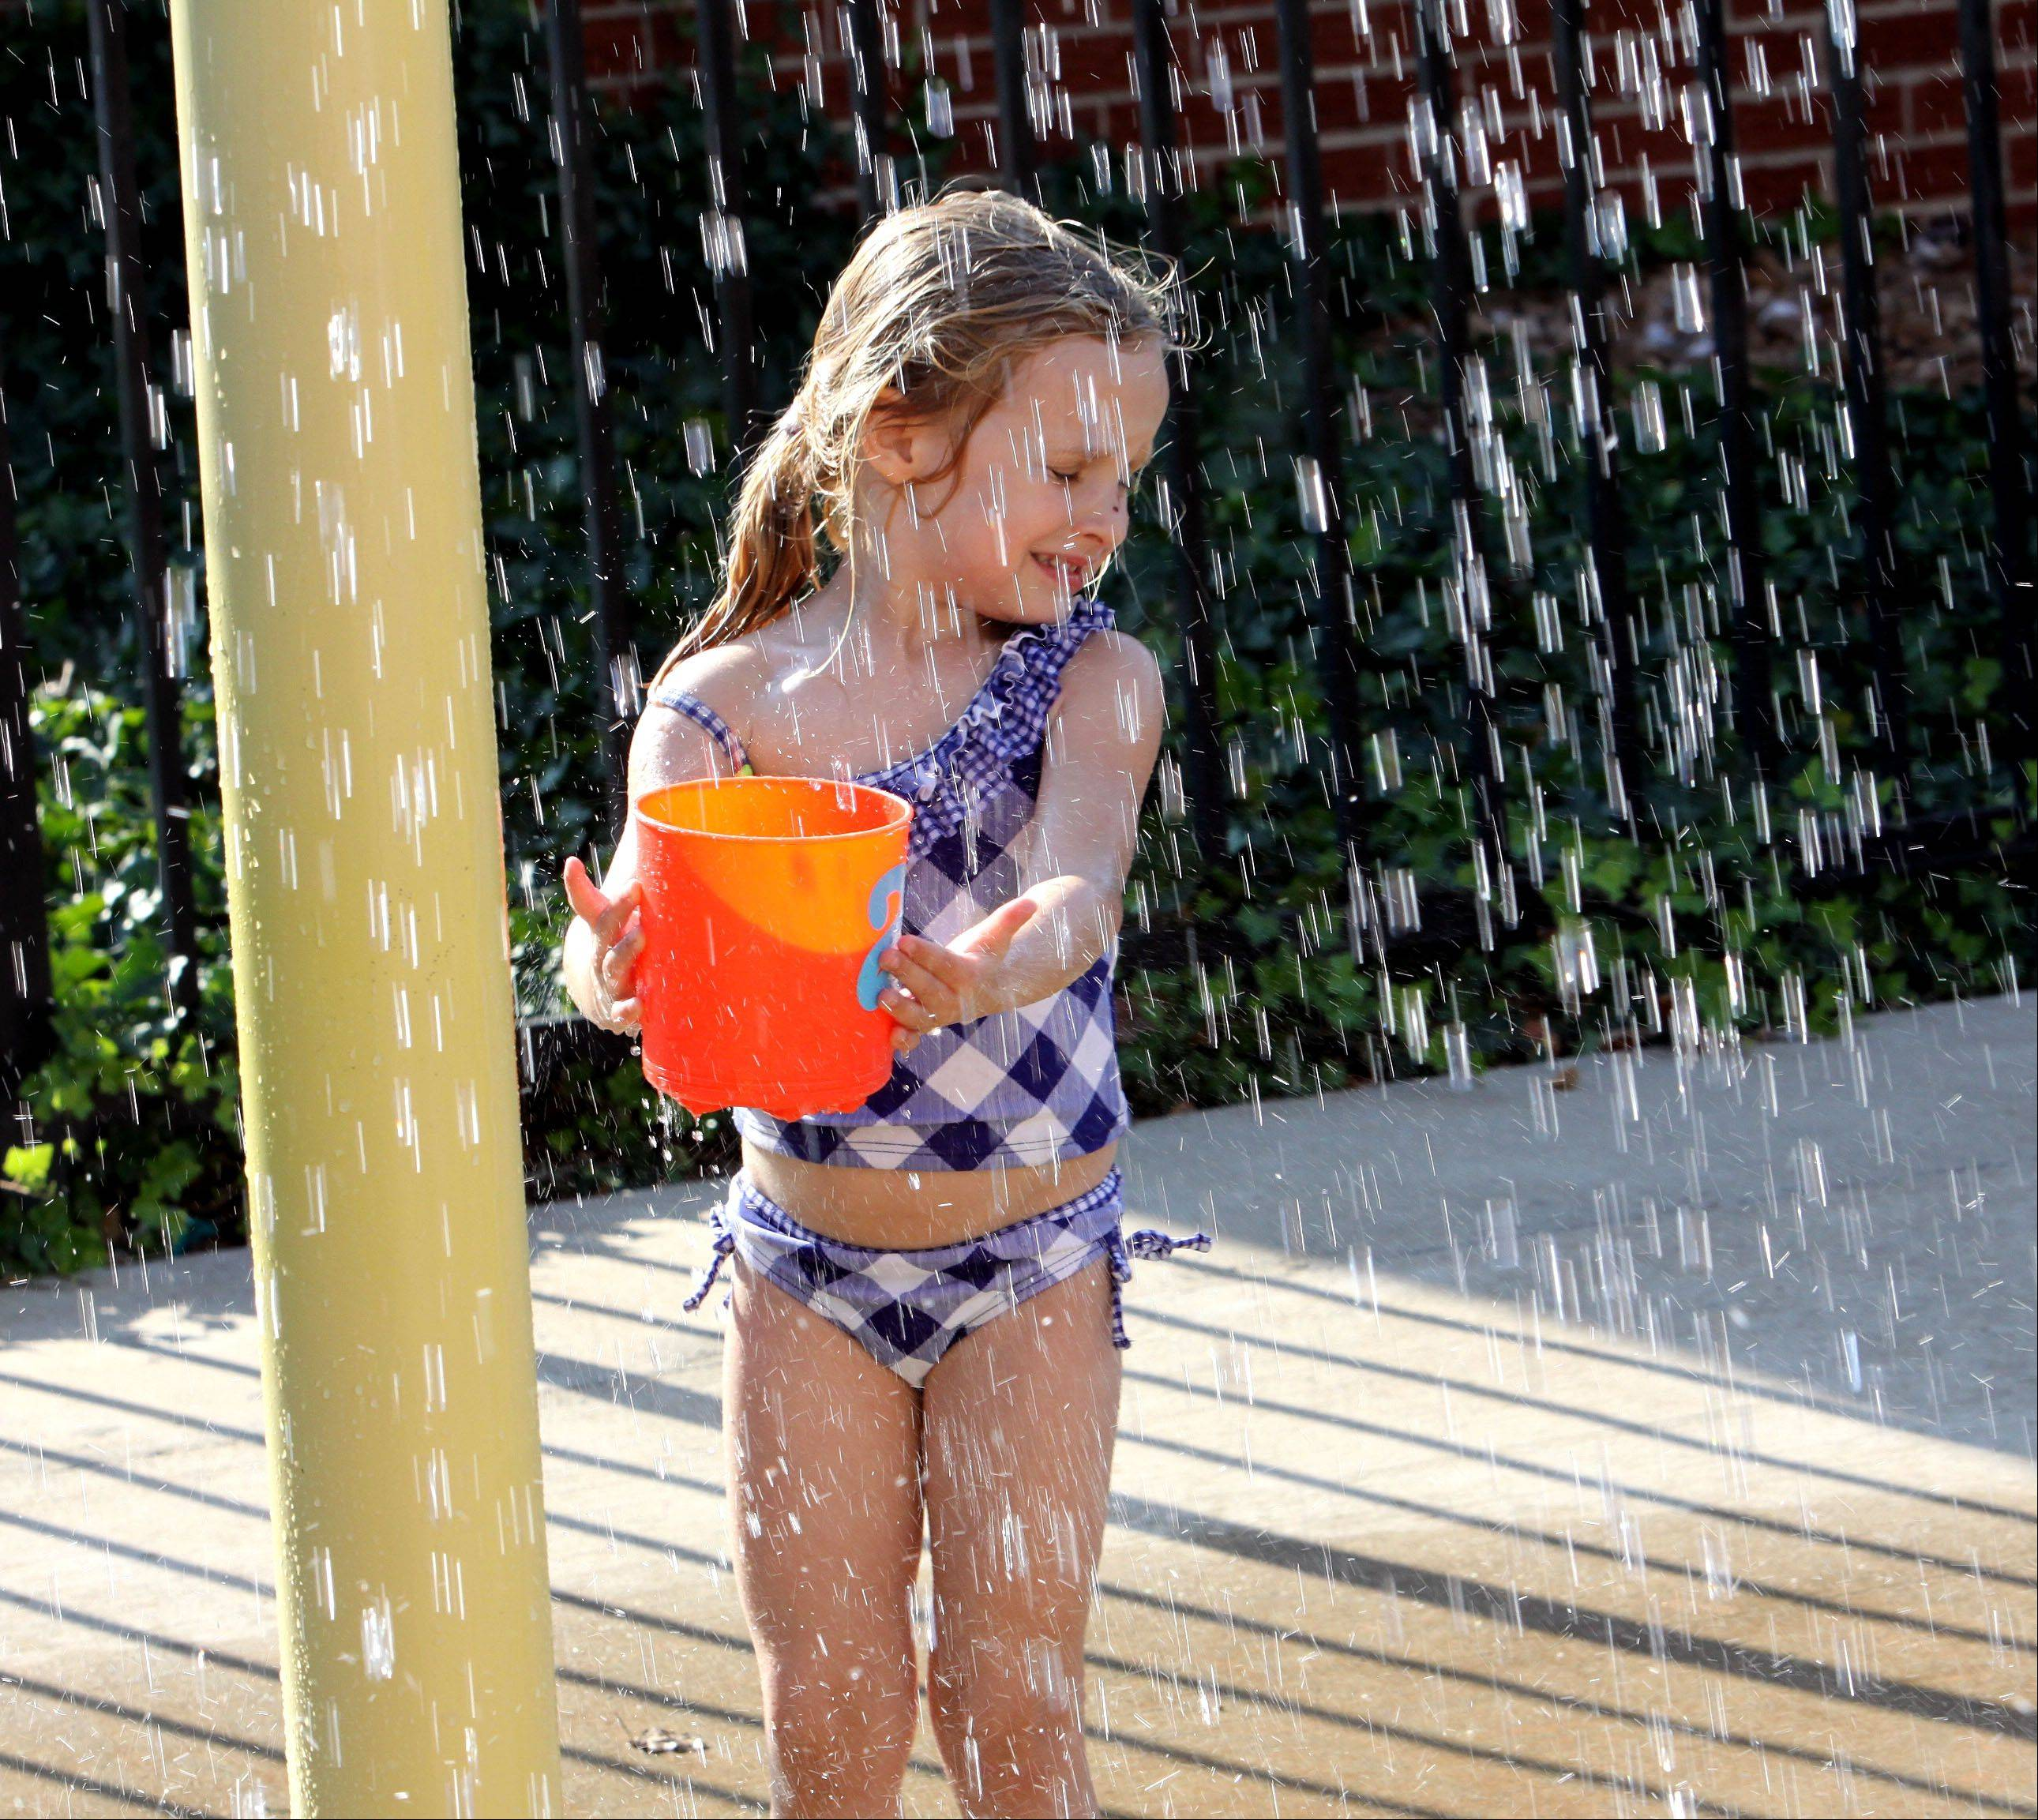 Madeline Deeke, 4, cools off from the heat and fills her bucket at the Water Spray Park in Lombard on Tuesday.